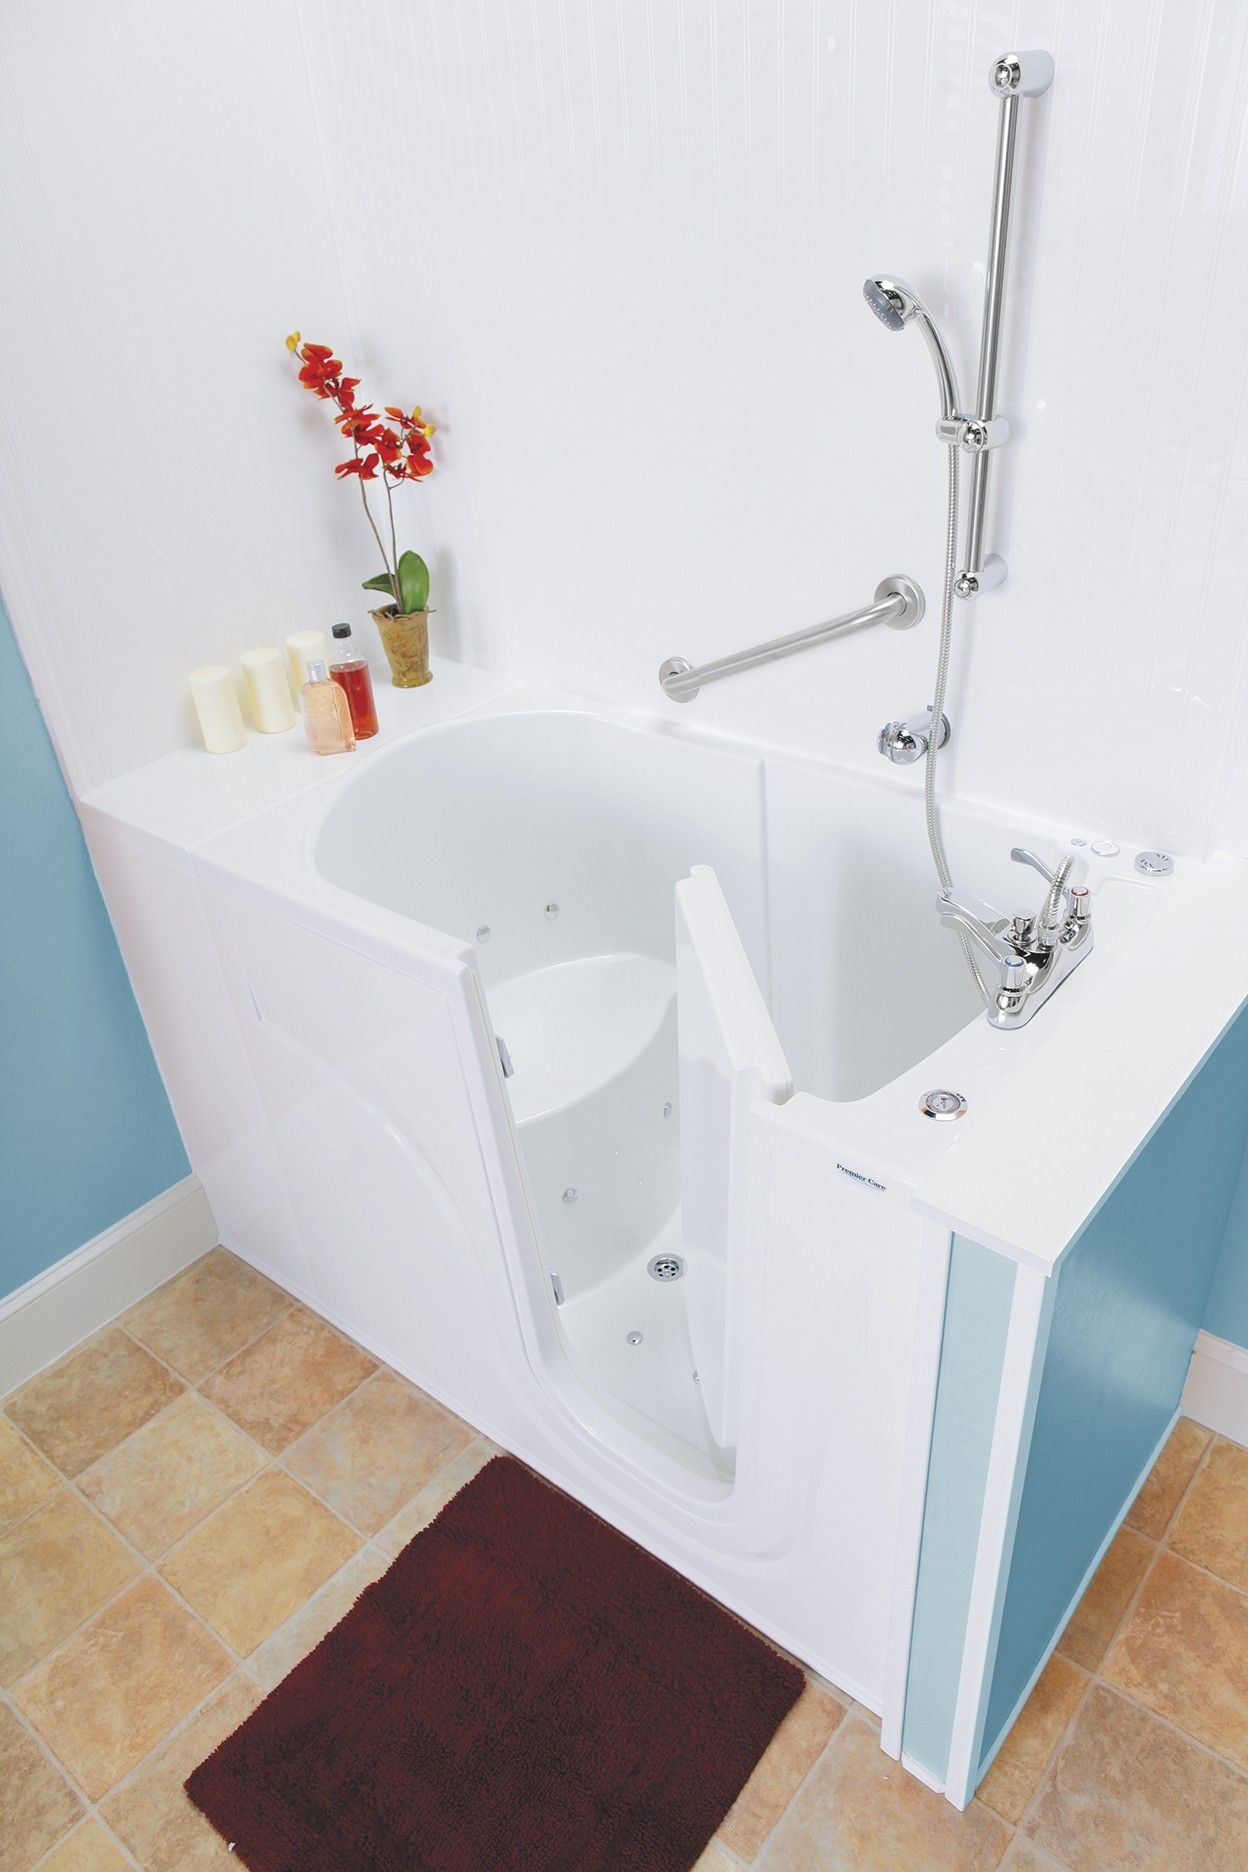 Premier Care Walk In Tub.The Haven Walk In Bath Allows You To Bathe And Relax In